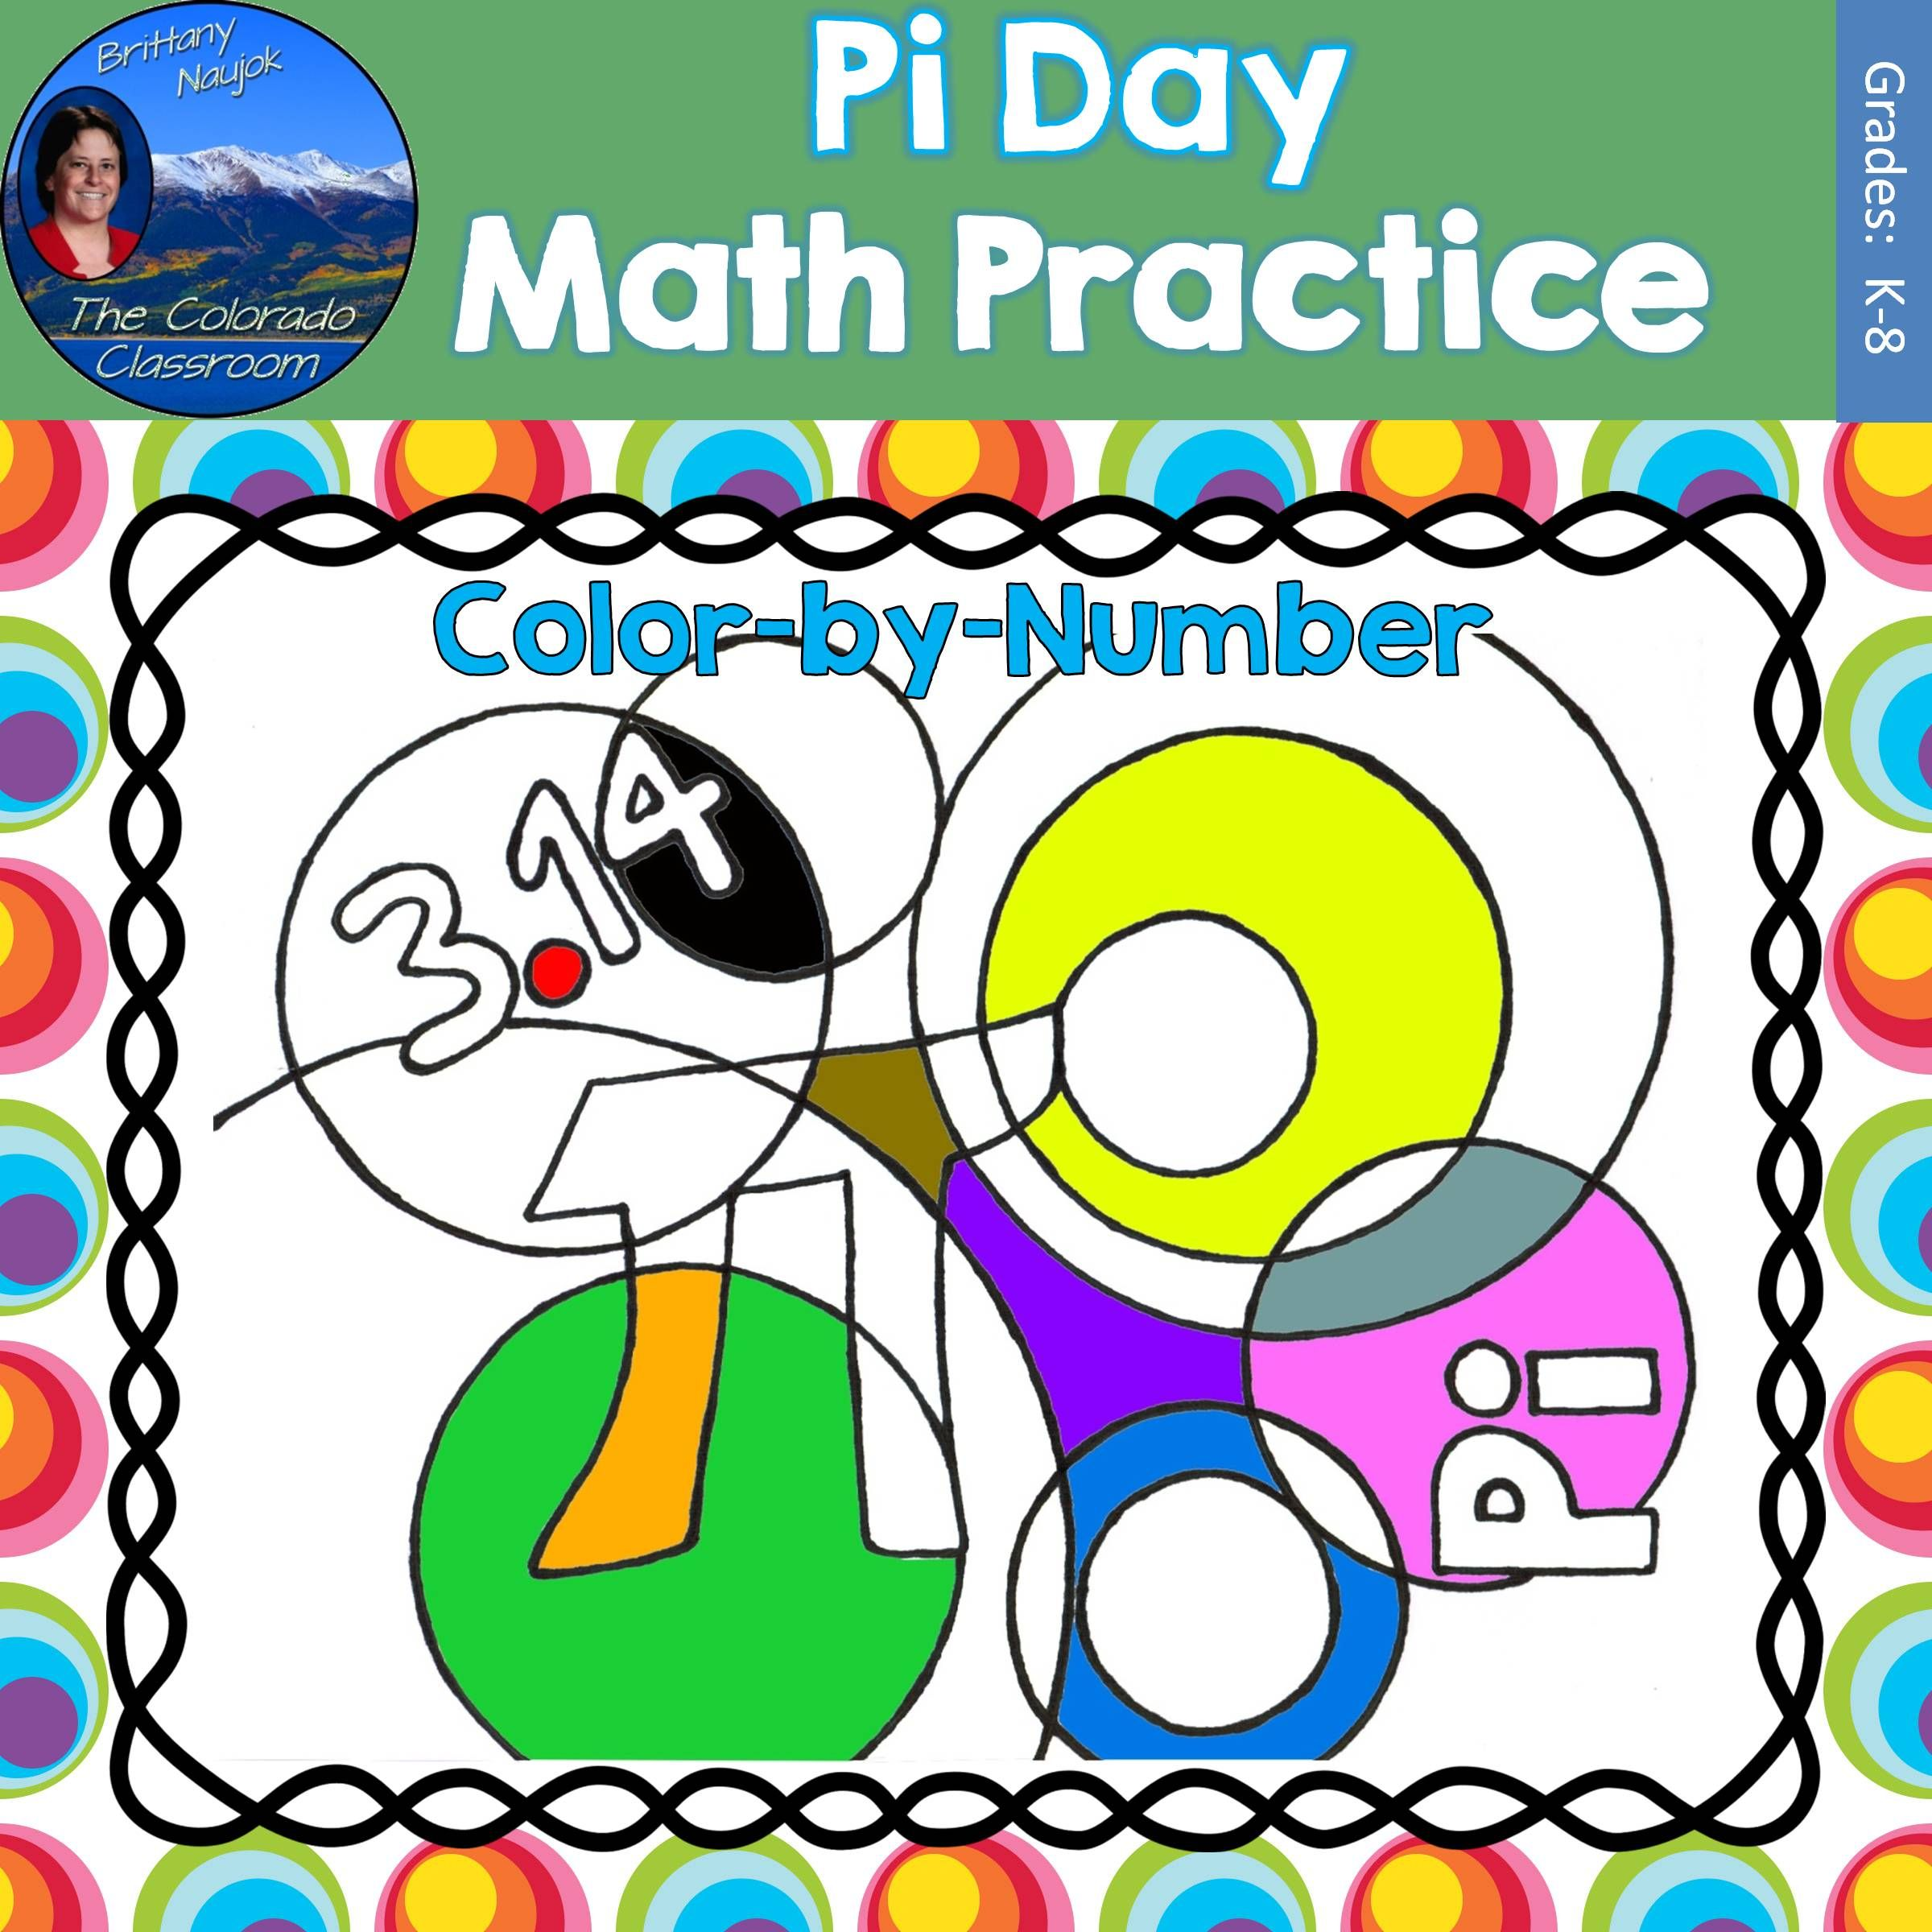 Pi Day Is Fun For All Grades With This Pi Day Themed Color By Number Picture Available In A Multitude Of Skills Incl Math Practices Maths Practice Sheets Math [ 2400 x 2400 Pixel ]